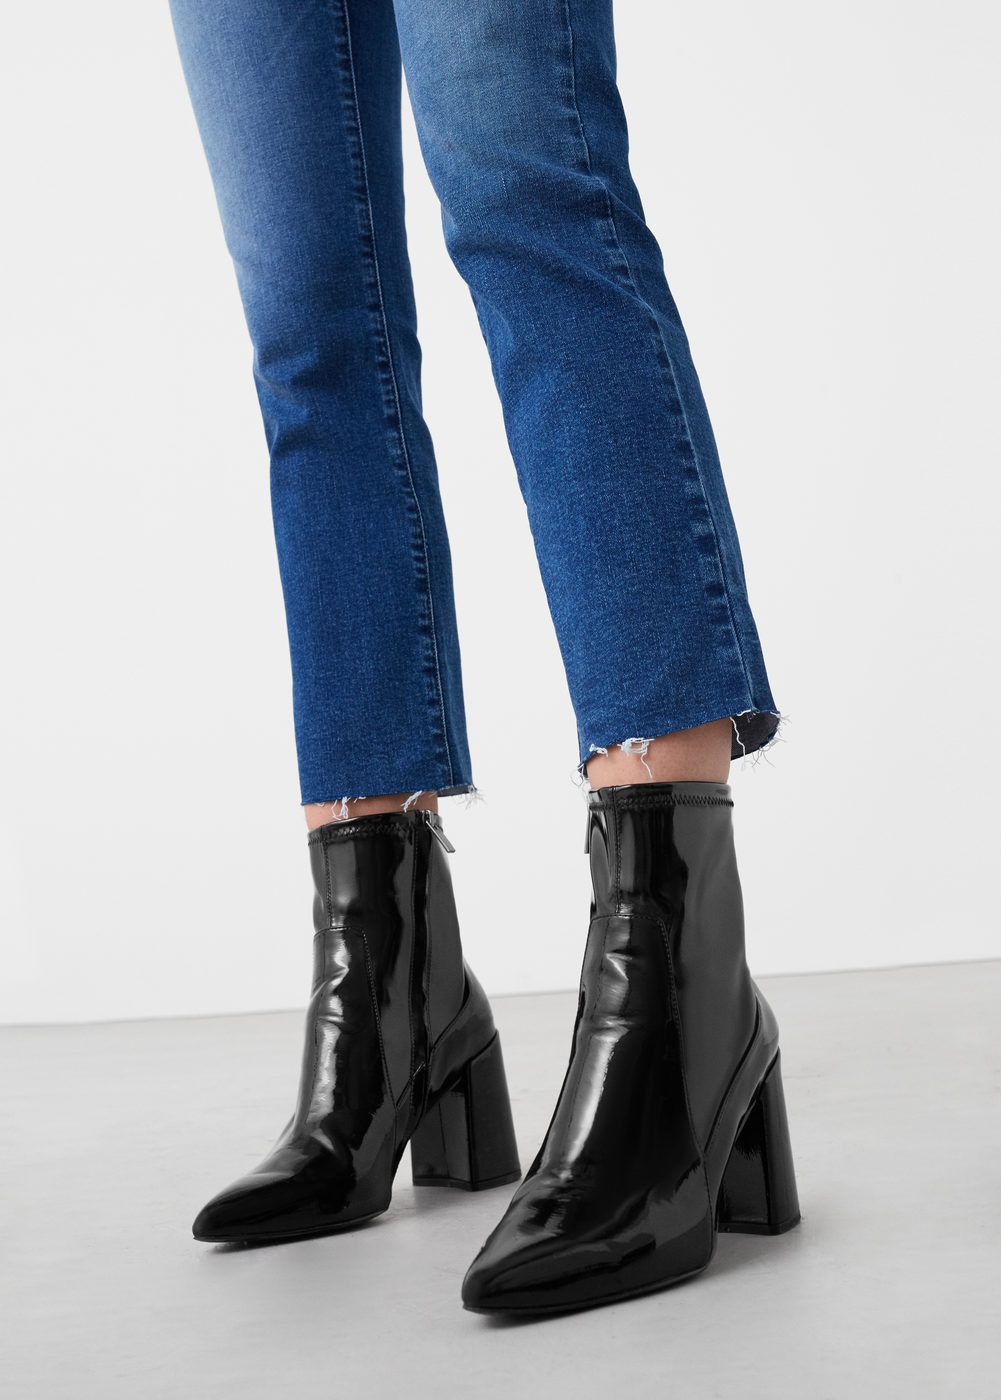 bottines vernies tige ajustée | bottines vernies, tiges et bottines